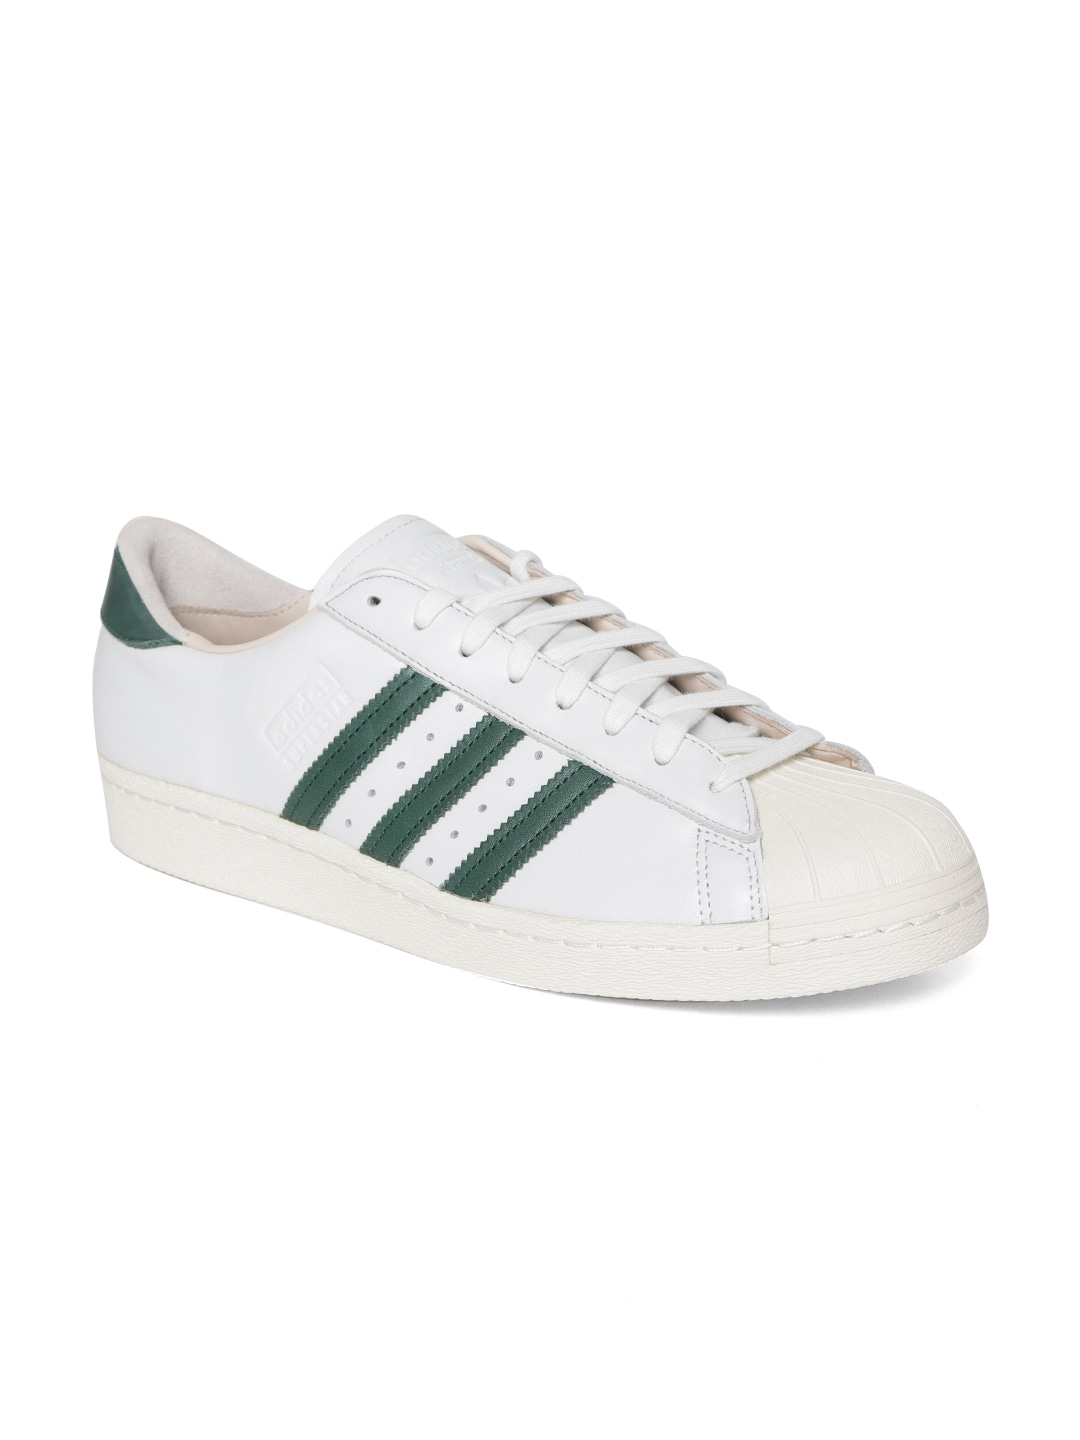 Adidas Superstar Shoes - Buy Adidas Superstar Shoes Online - Myntra f09b5d3b9037c